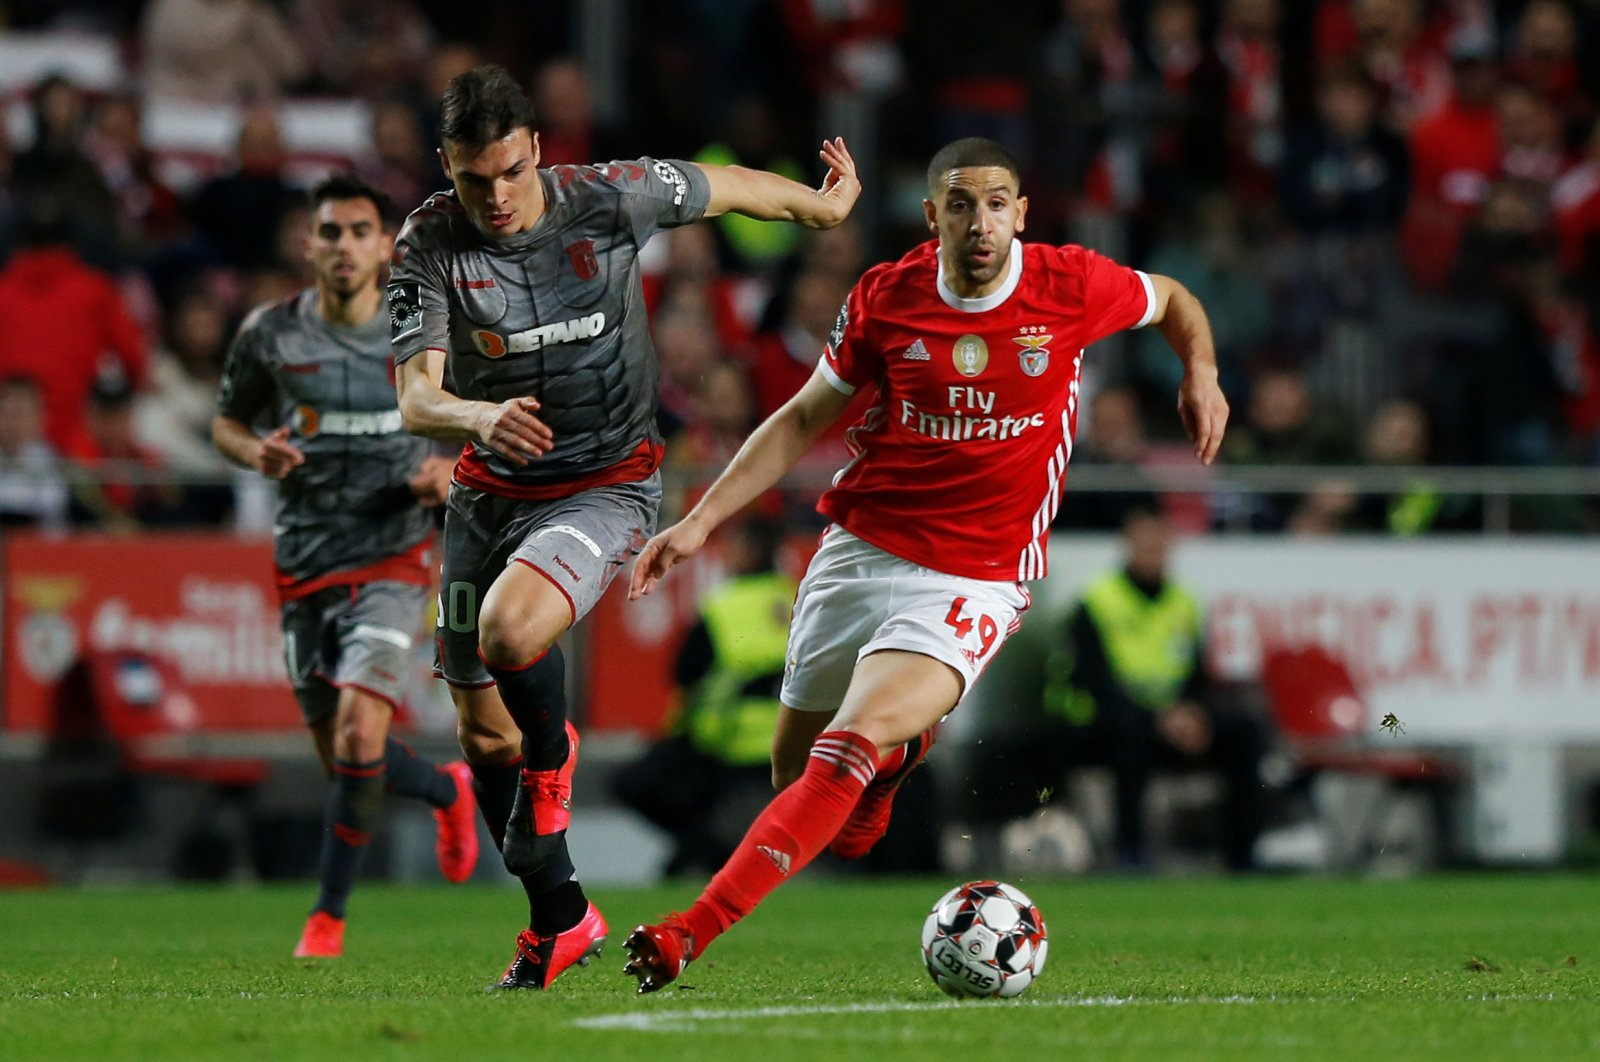 Benfica's Adel Taarabt in action with S.C. Braga's Joao Palhinha during a Primeira Liga match in Lisbon, Portugal, Feb. 15, 2020. (Reuters Photo)